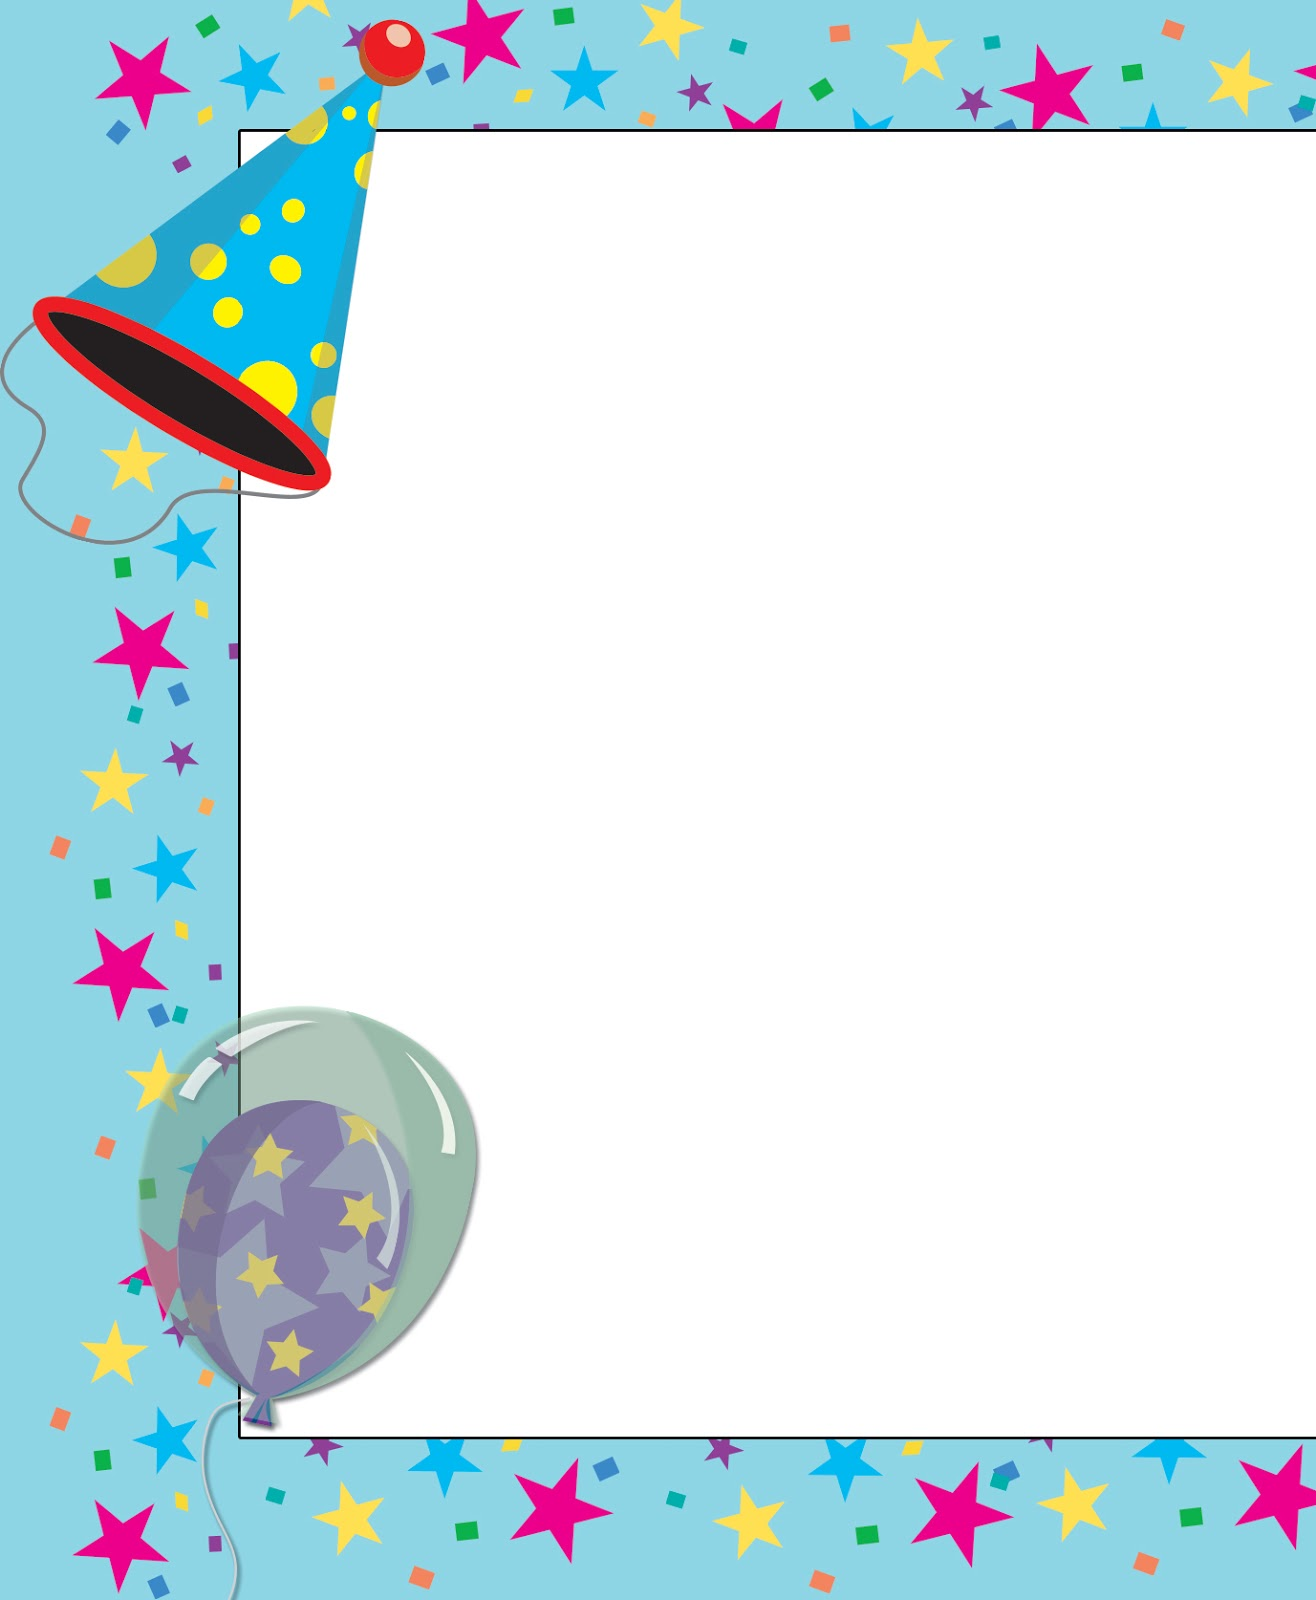 Birthday card free download gidiyedformapolitica birthday card free download bookmarktalkfo Image collections